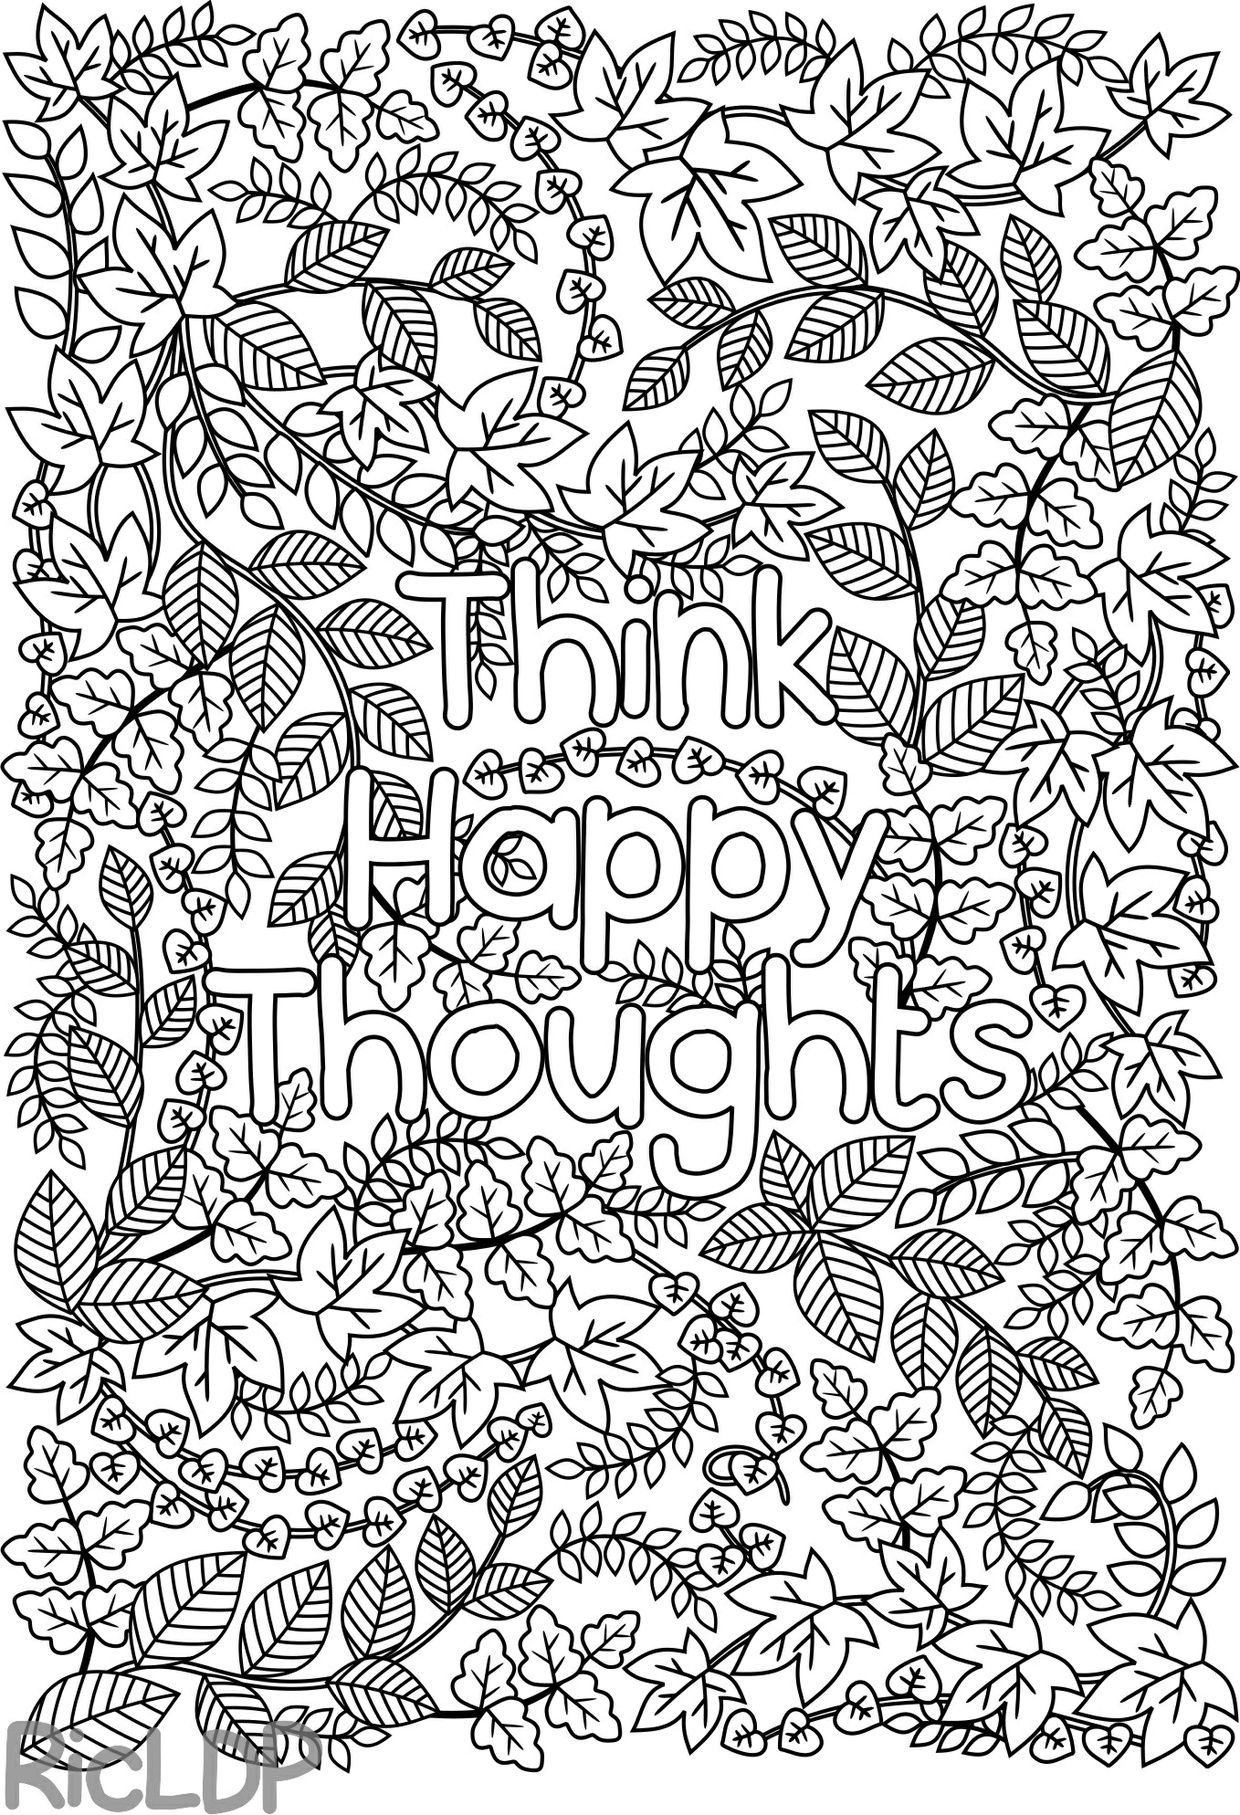 Think Happy Thoughts Coloring Page For Grown Ups